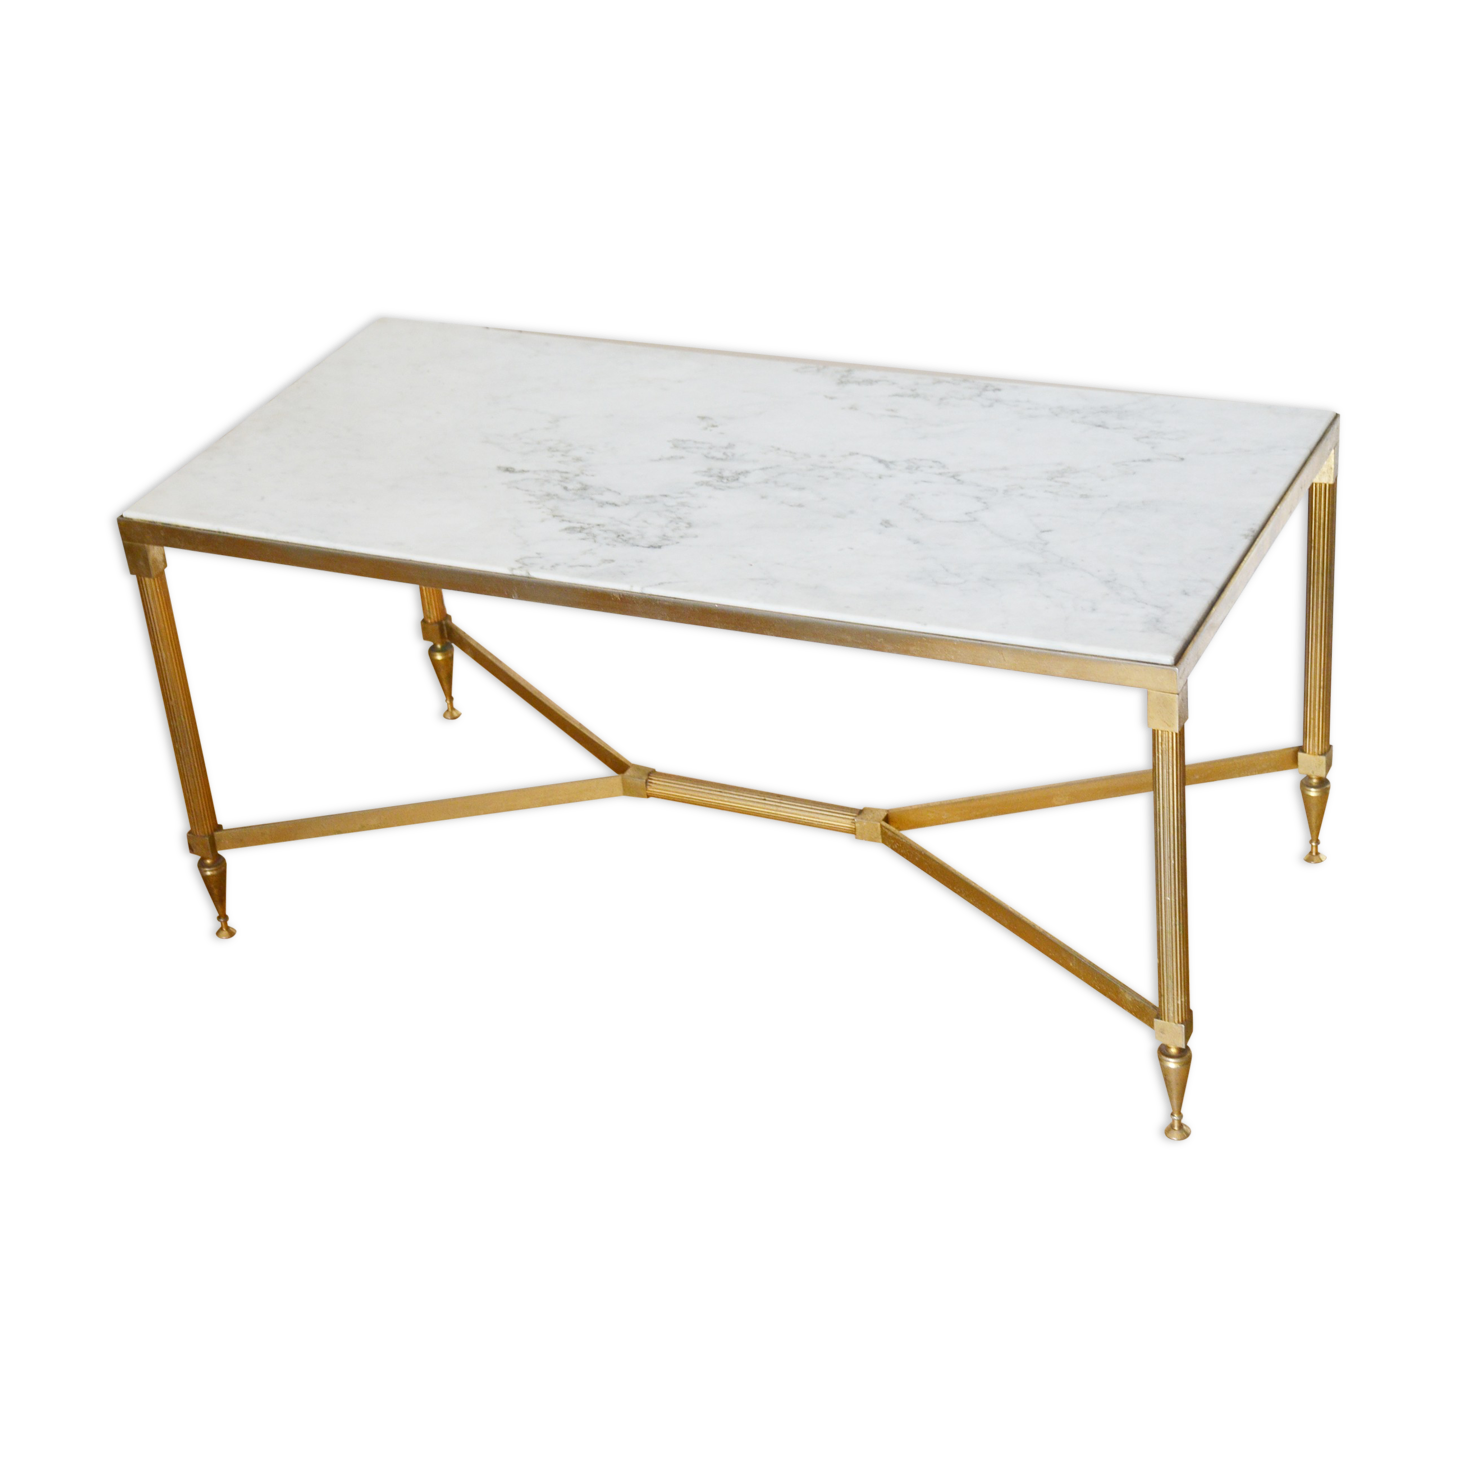 Table basse marbre blanc simple la table basse en marbre - Table knoll ovale marbre blanc ...